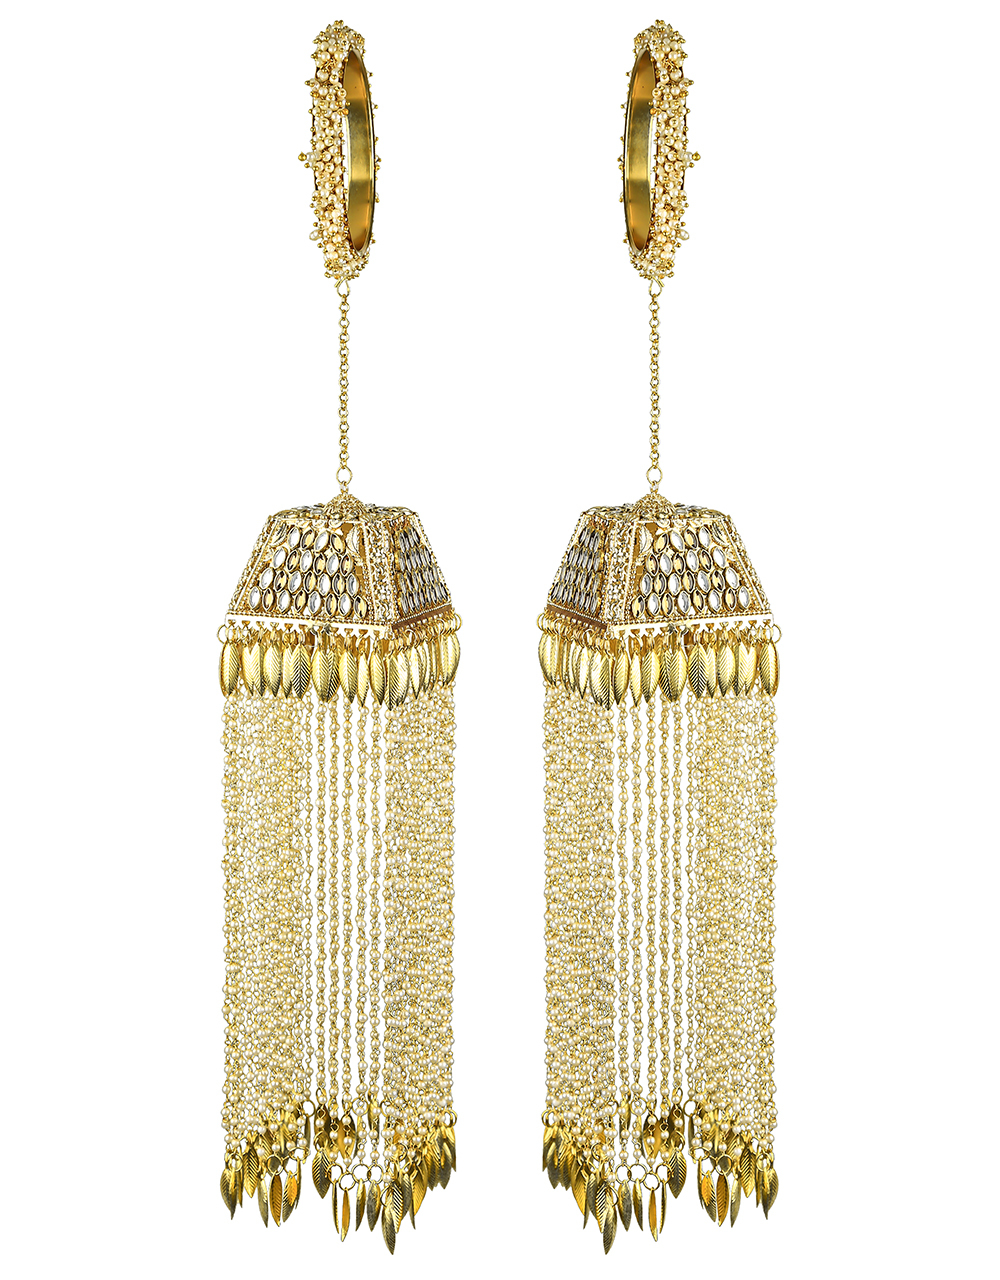 Royal Look Appealing Punjabi Kalire with Hanging Pearl Strings with Droplet